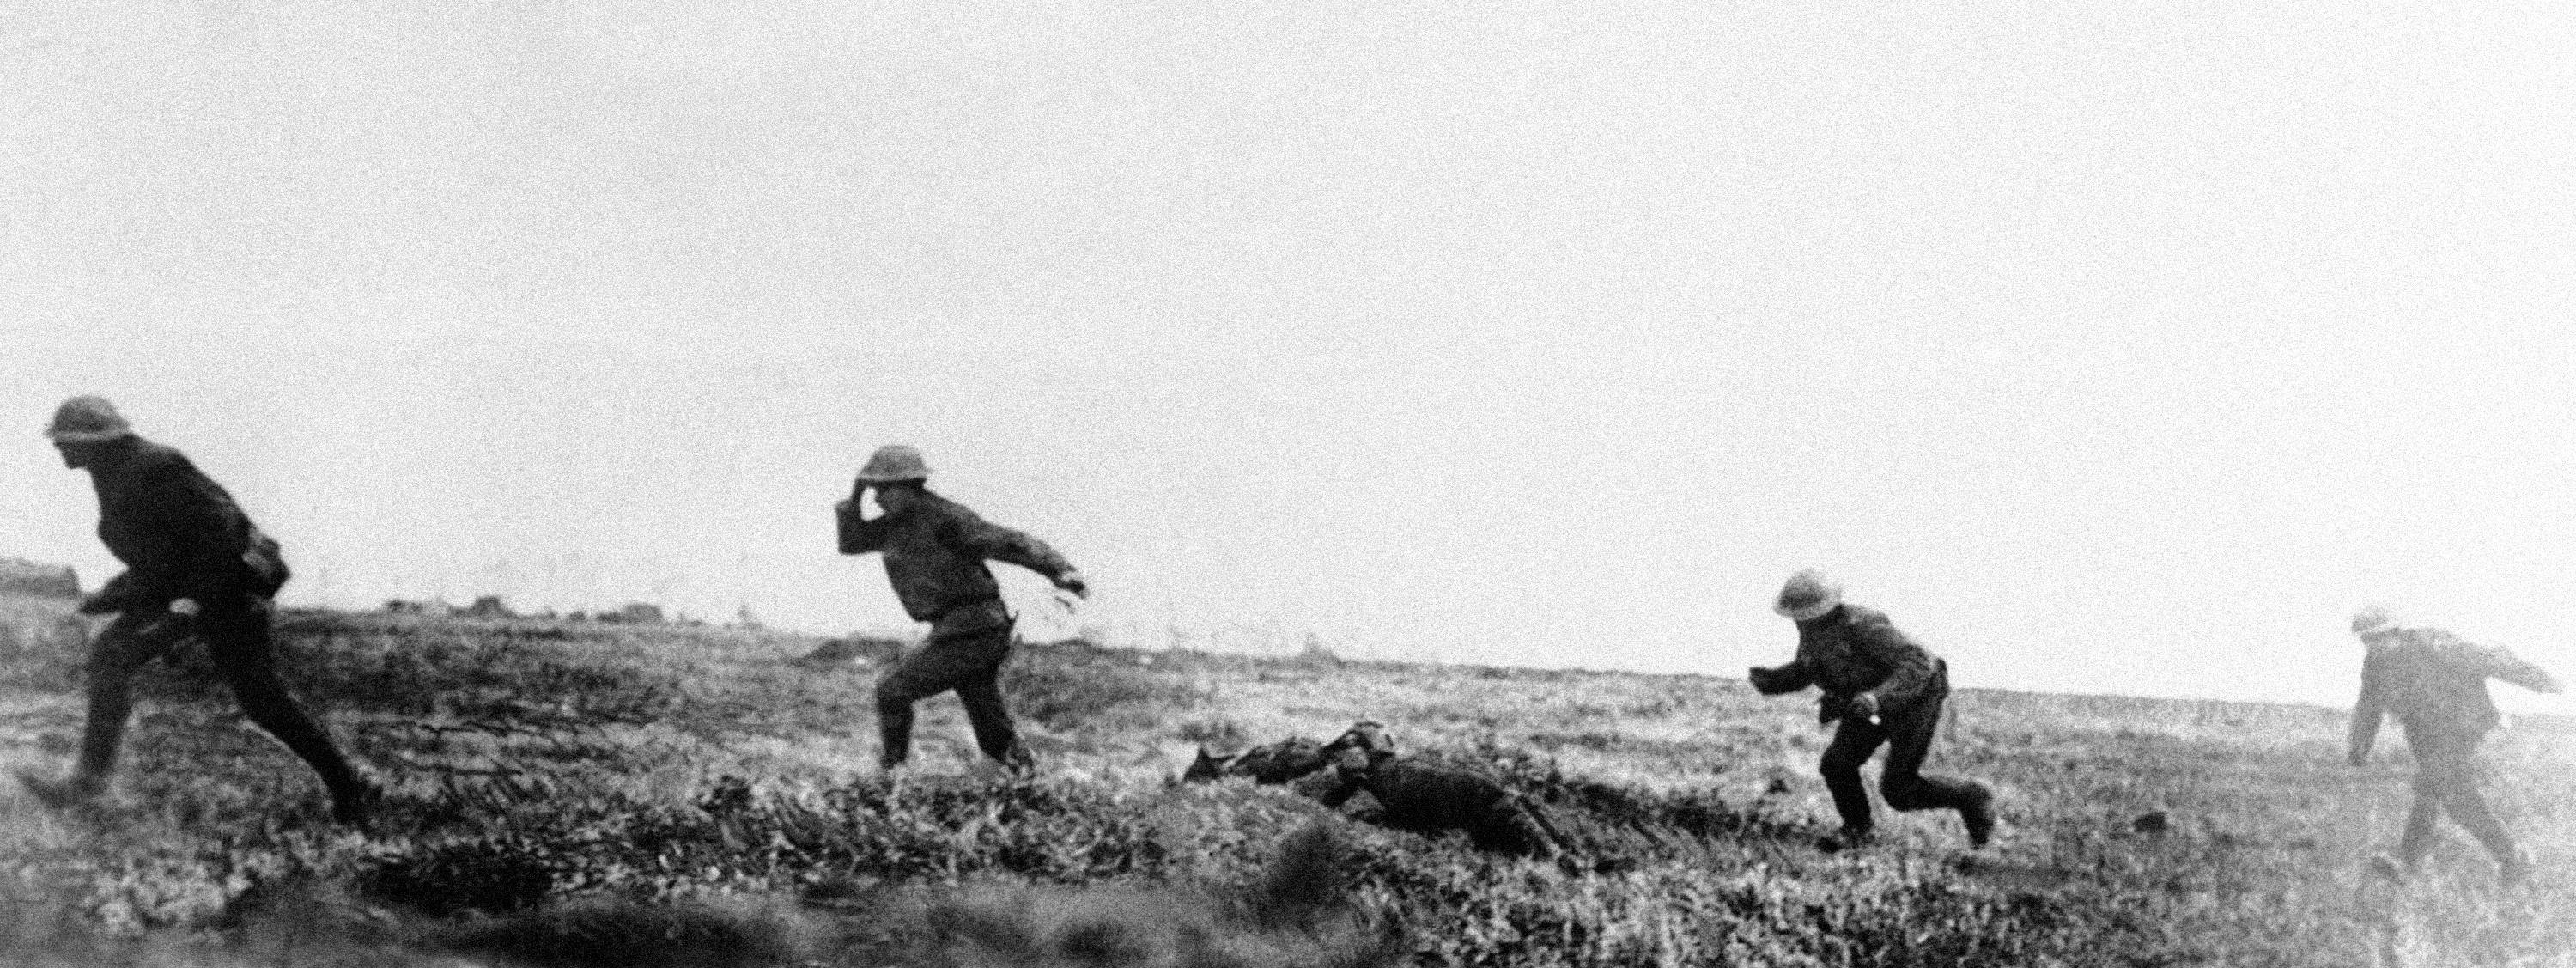 72 OF 100: In this undated file photo, British troops run under heavy fire outside Cambrai, France, during World War I.